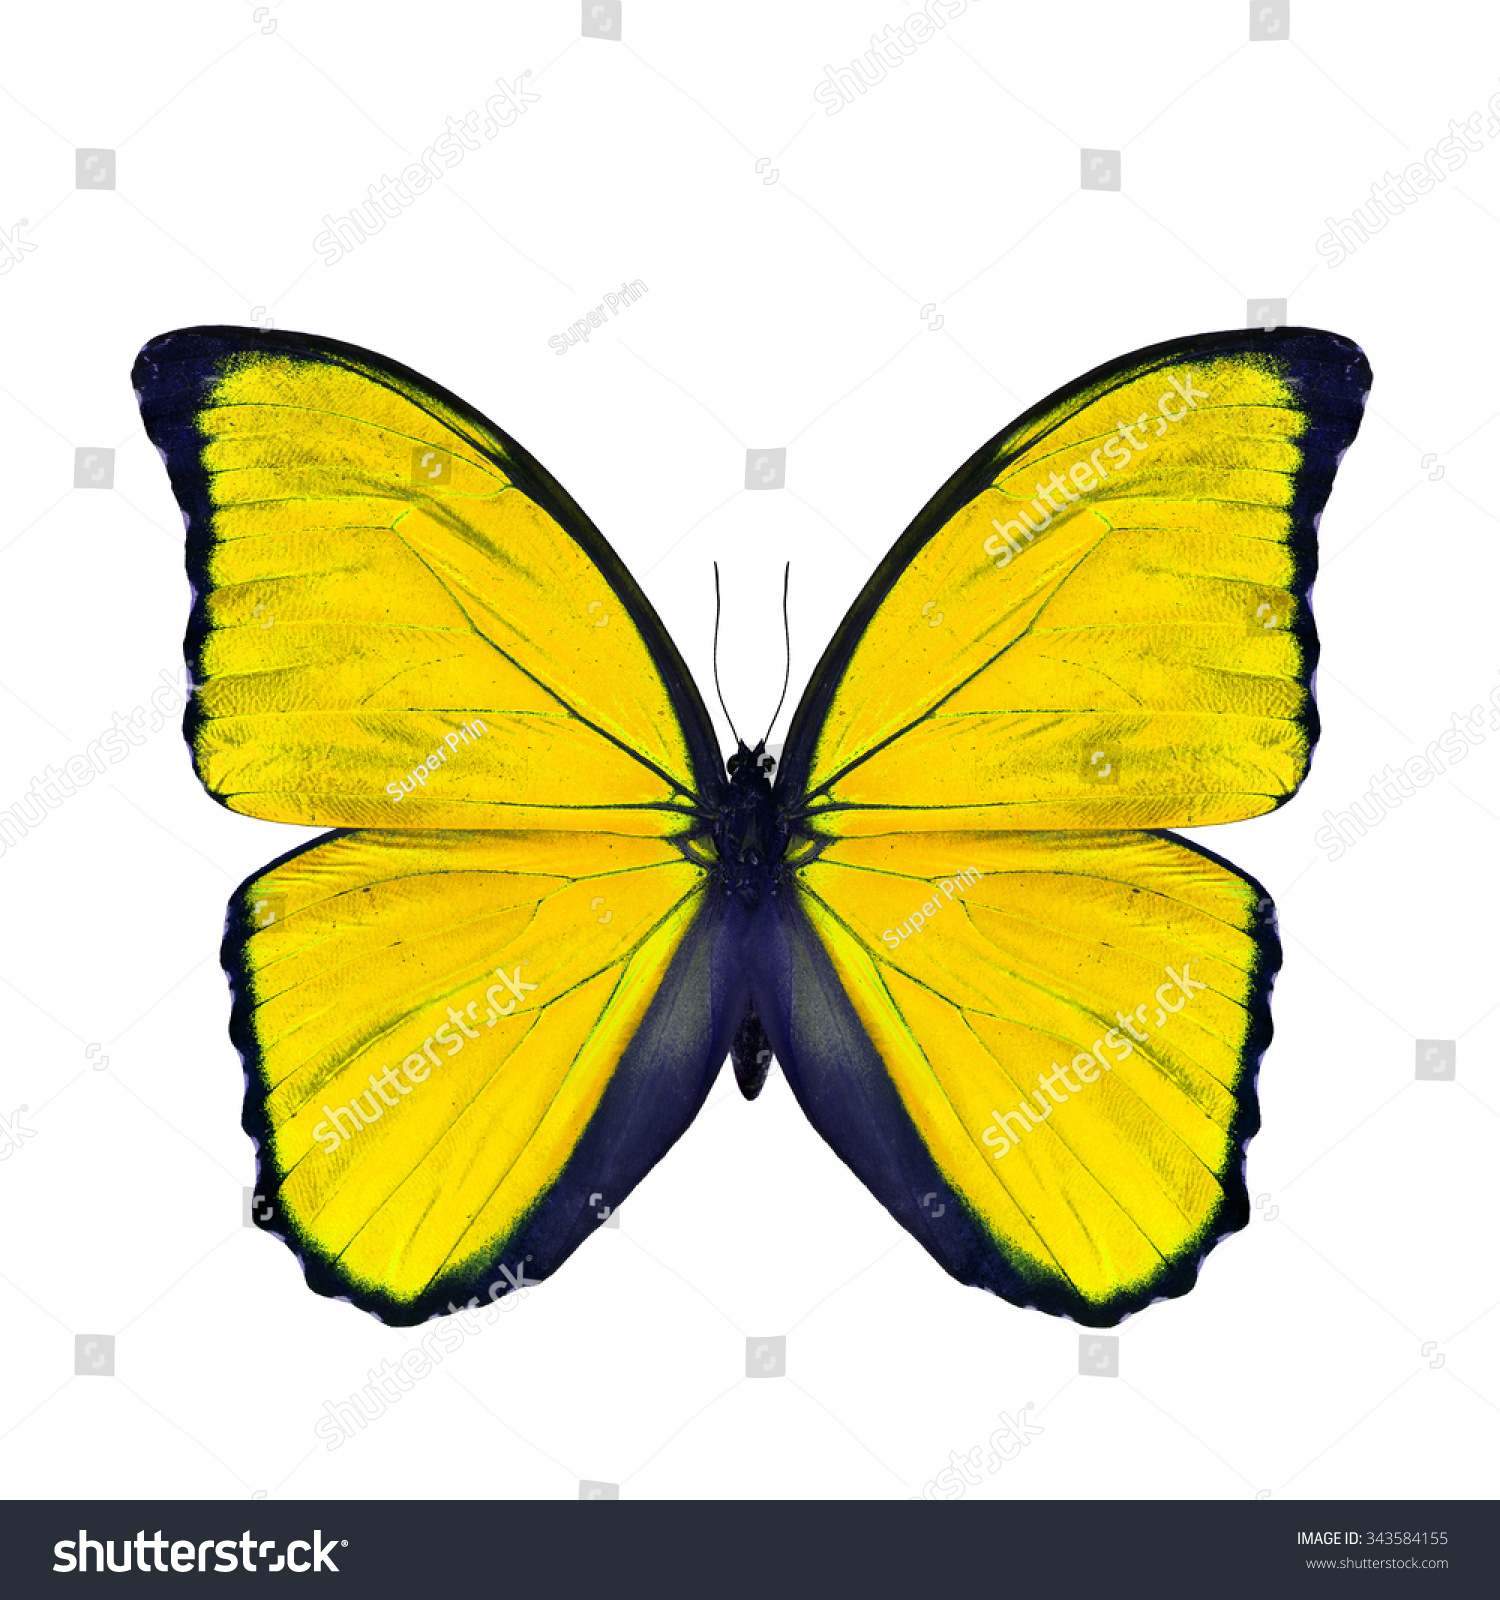 butterfly on yellow color - photo #22